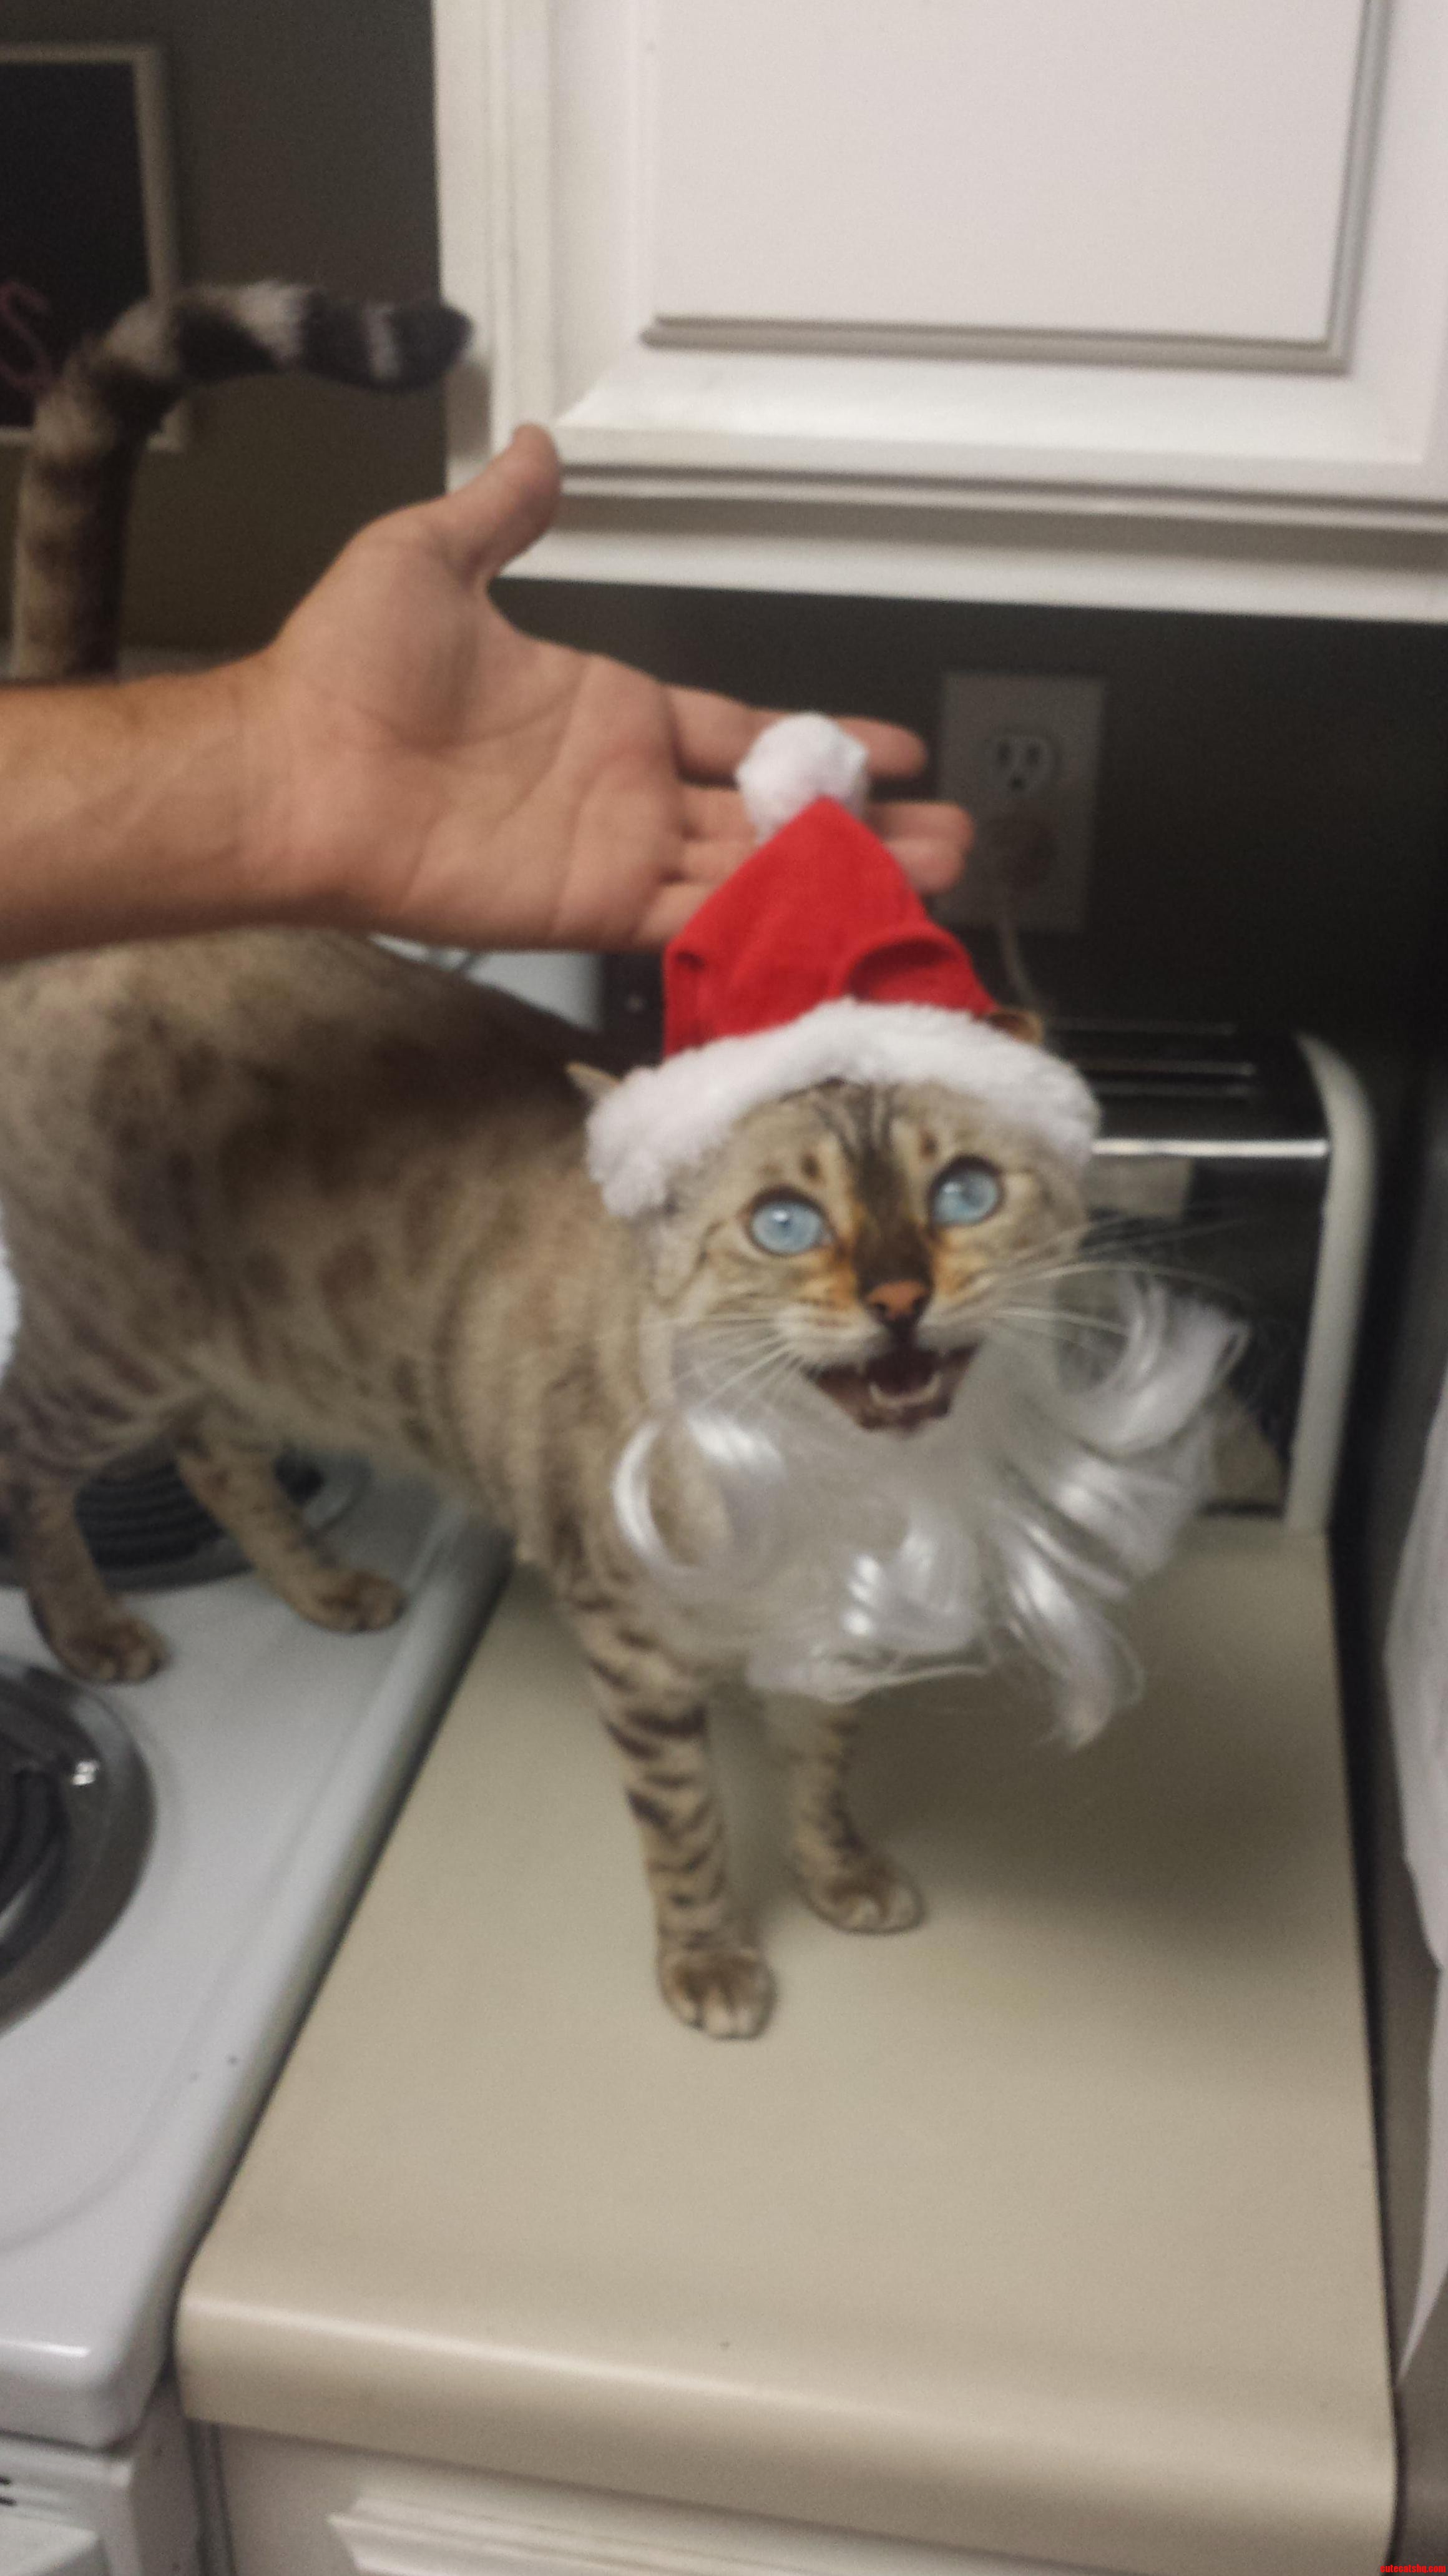 Sia wanted in on the holiday fun